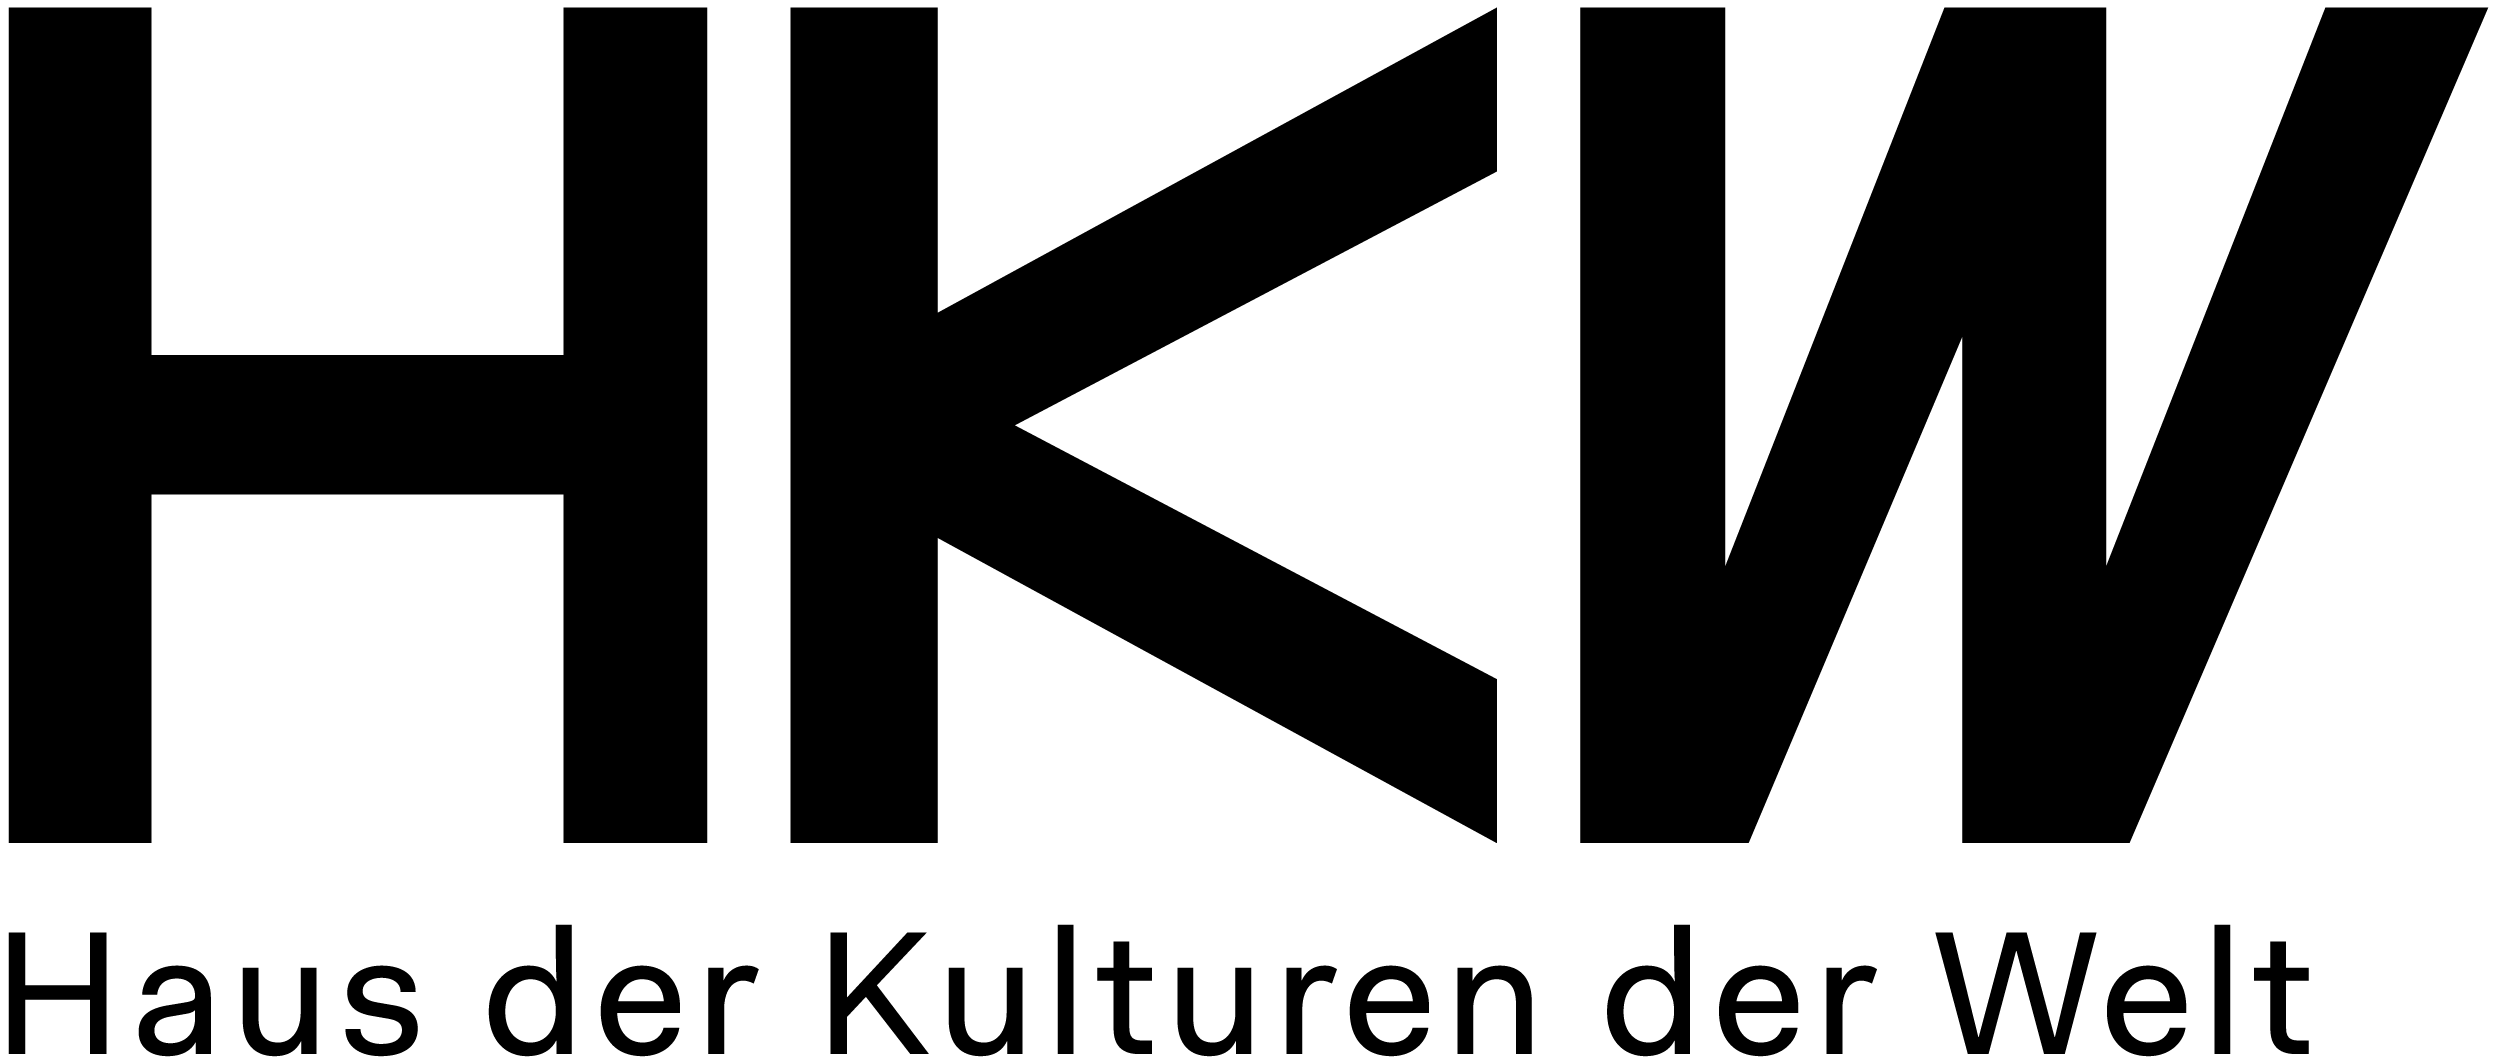 hkw_logo_black_s_19-24mm-100px_breite.png